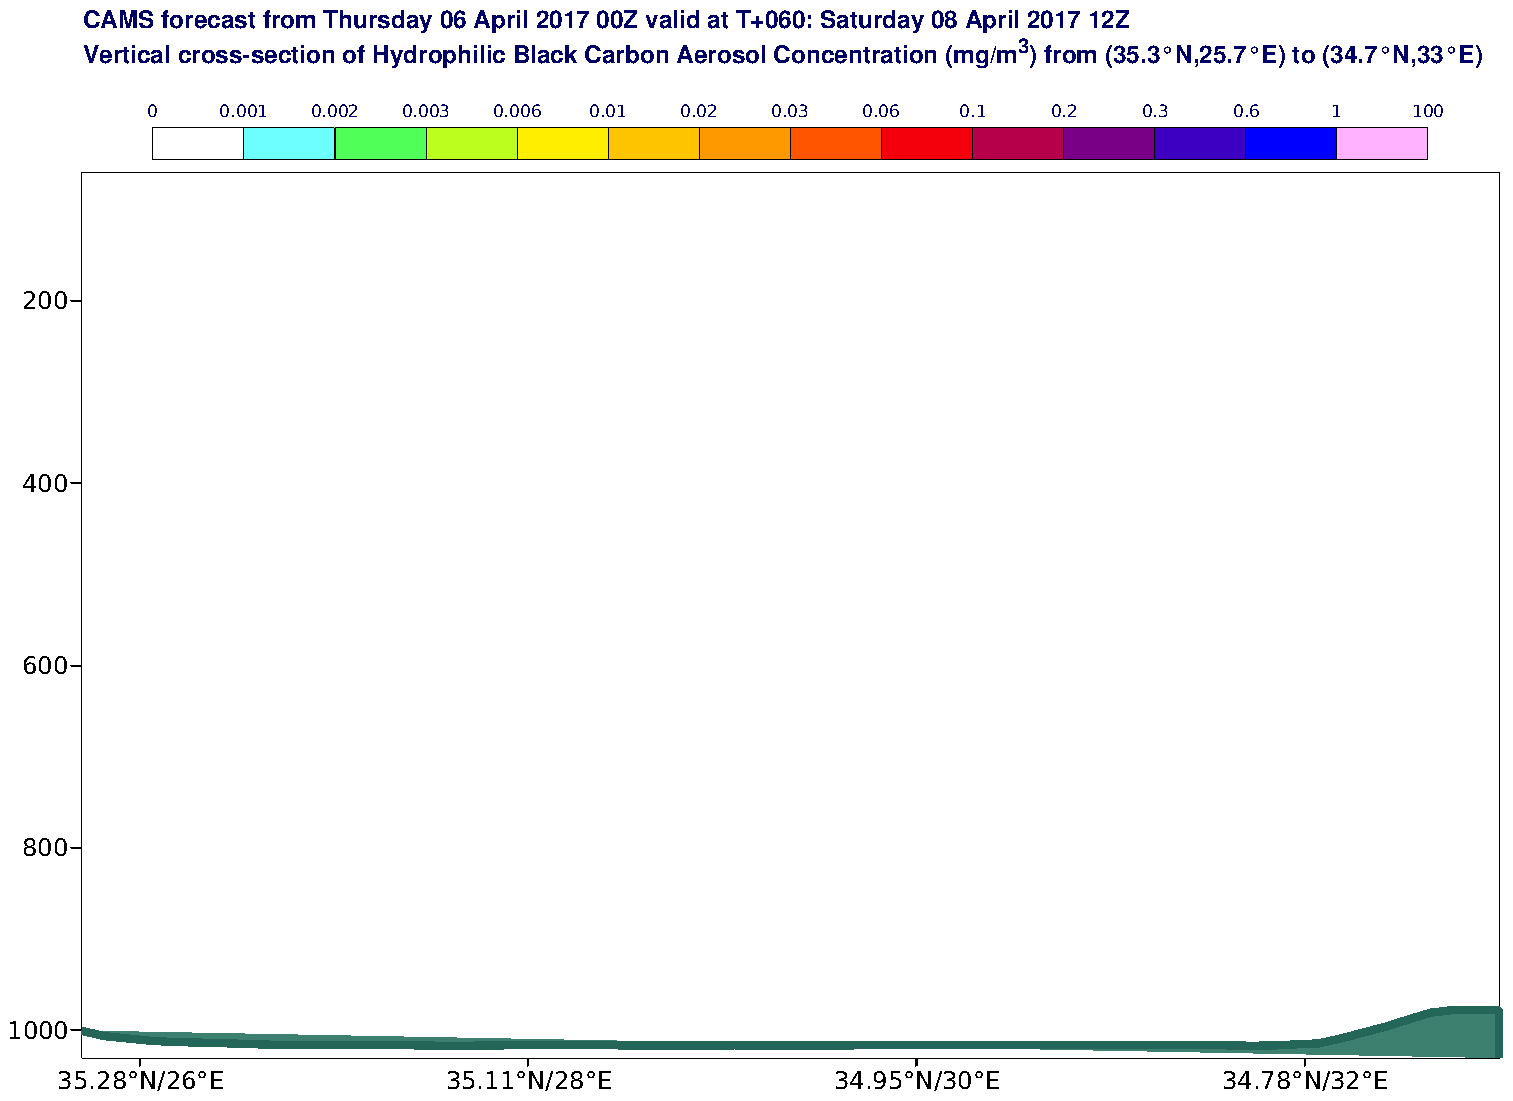 Vertical cross-section of Hydrophilic Black Carbon Aerosol Concentration (mg/m3) valid at T60 - 2017-04-08 12:00